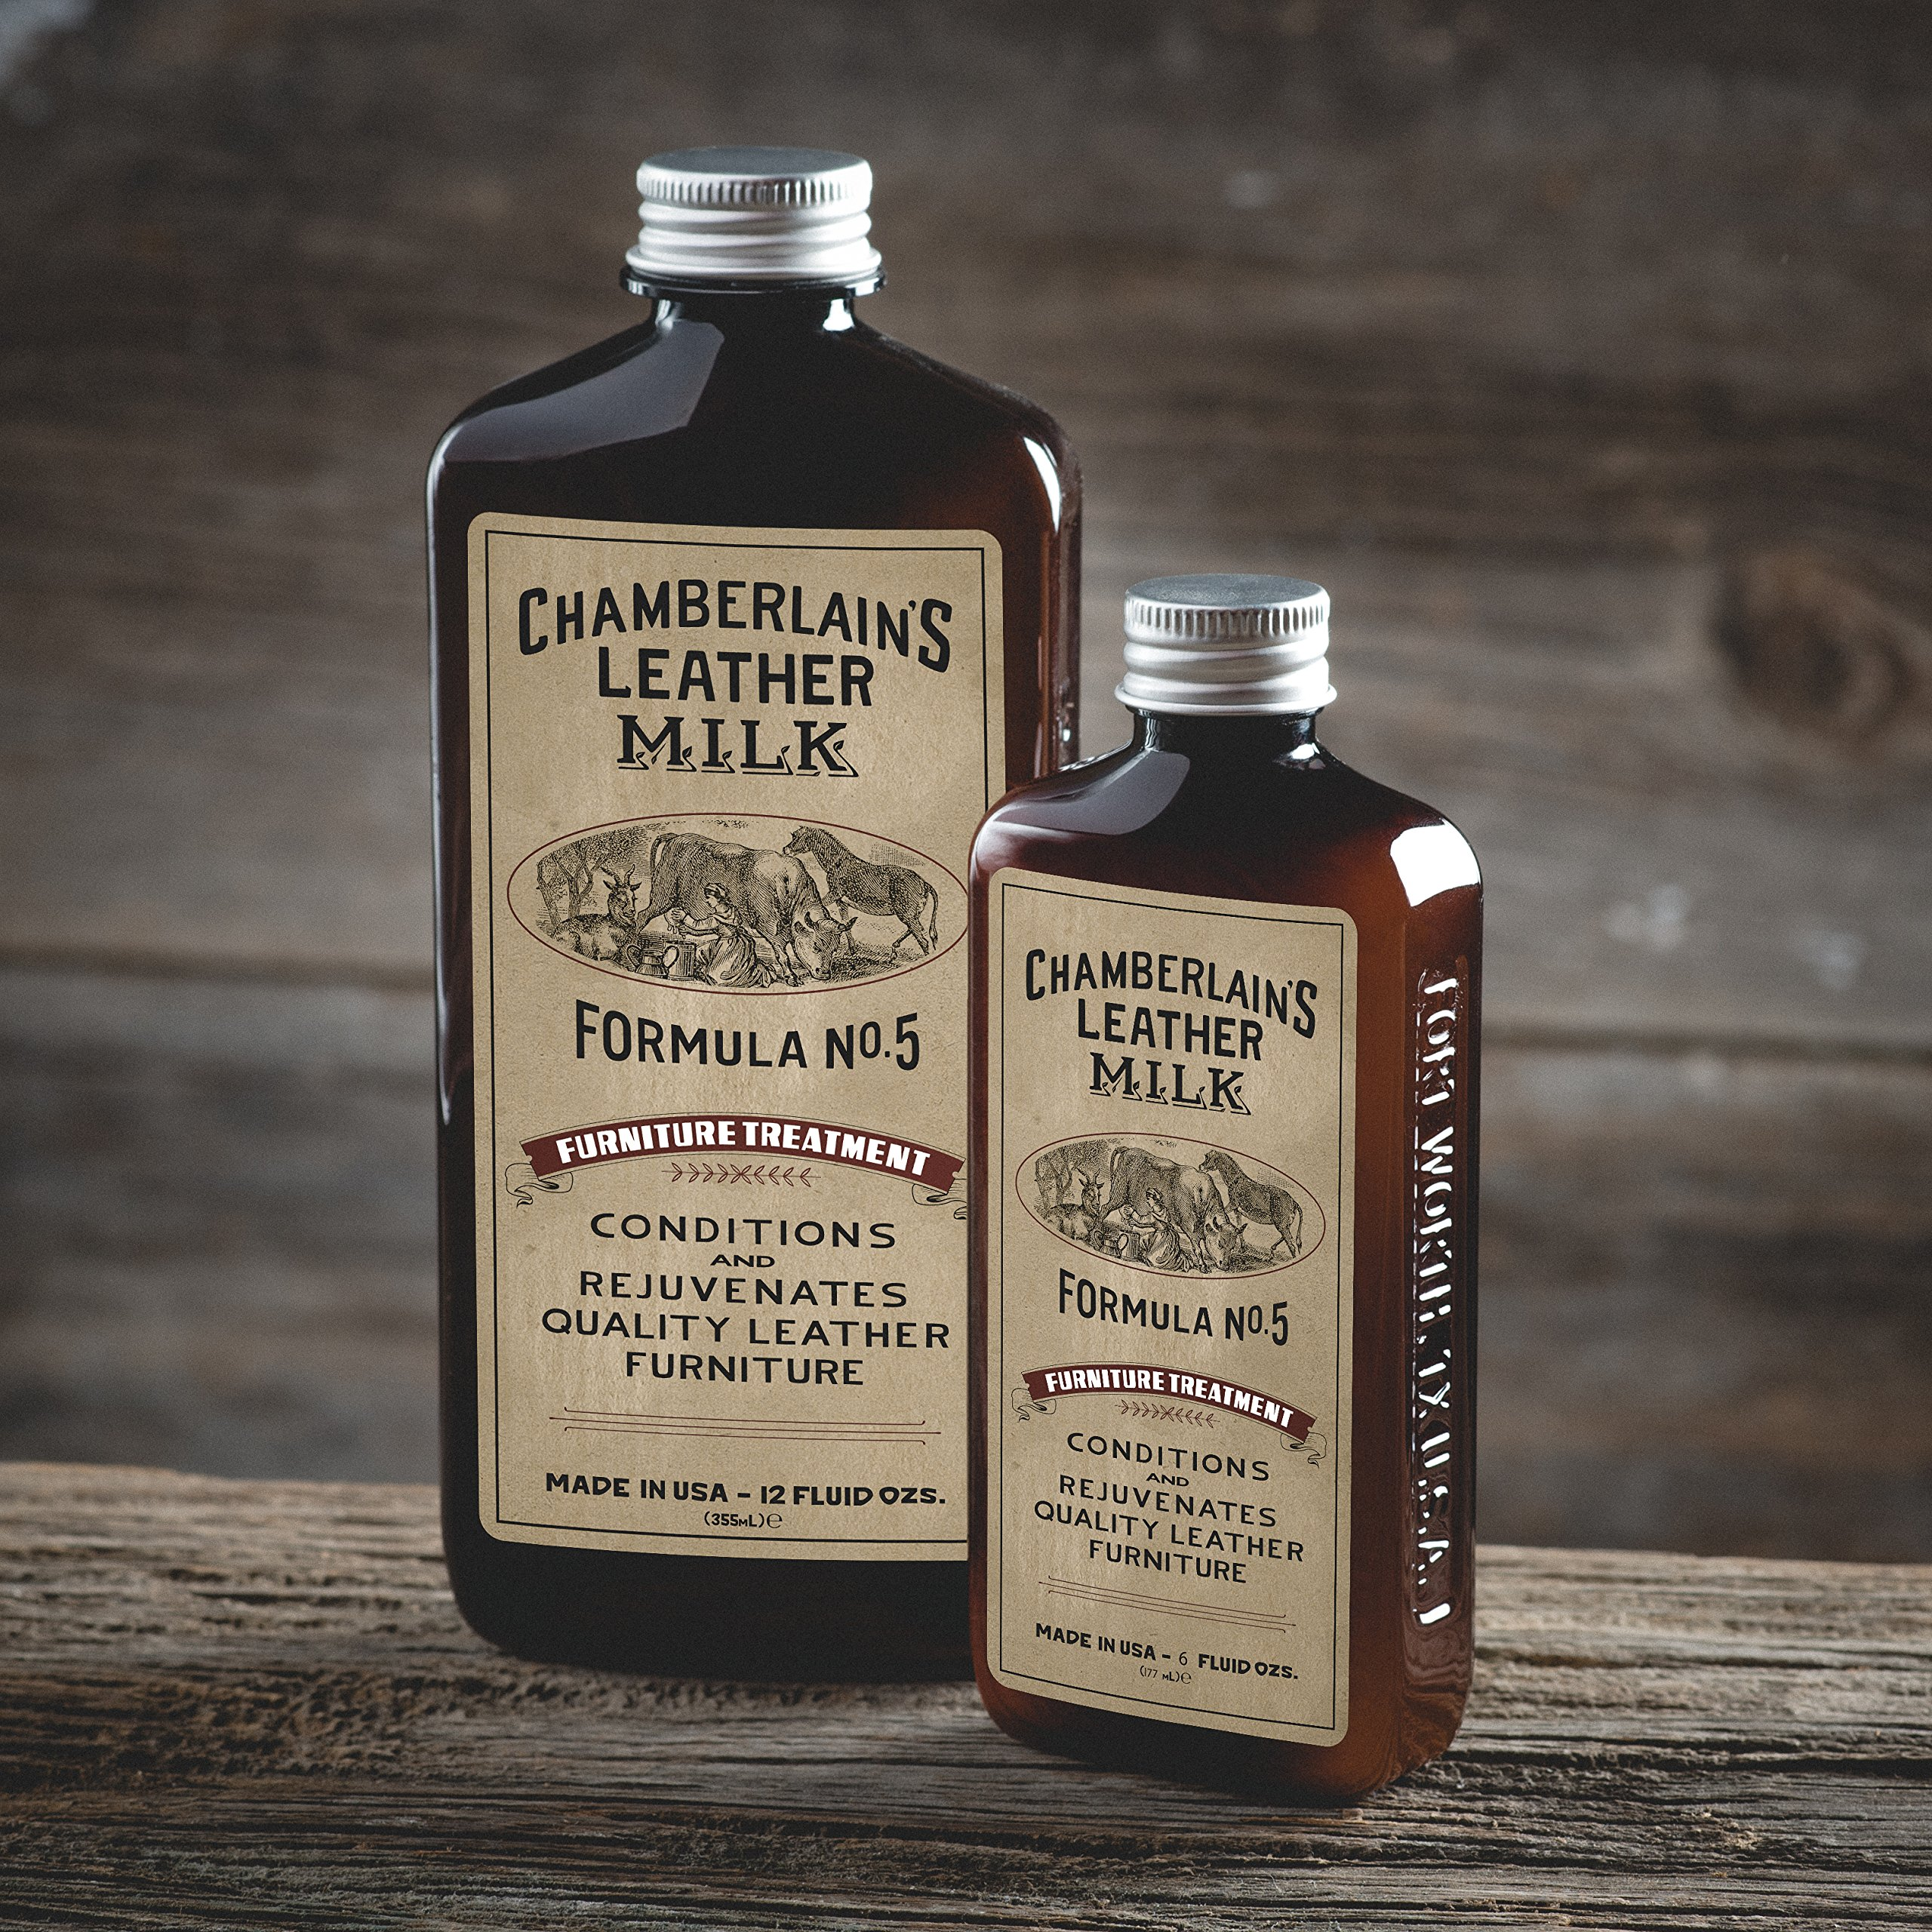 Leather Milk Leather Furniture Conditioner and Cleaner - Furniture Treatment No. 5 - For All Natural, Non-Toxic Leather Care. Made in the USA. 2 Sizes. Includes Premium Applicator Pad! by Chamberlain's Leather Milk (Image #9)